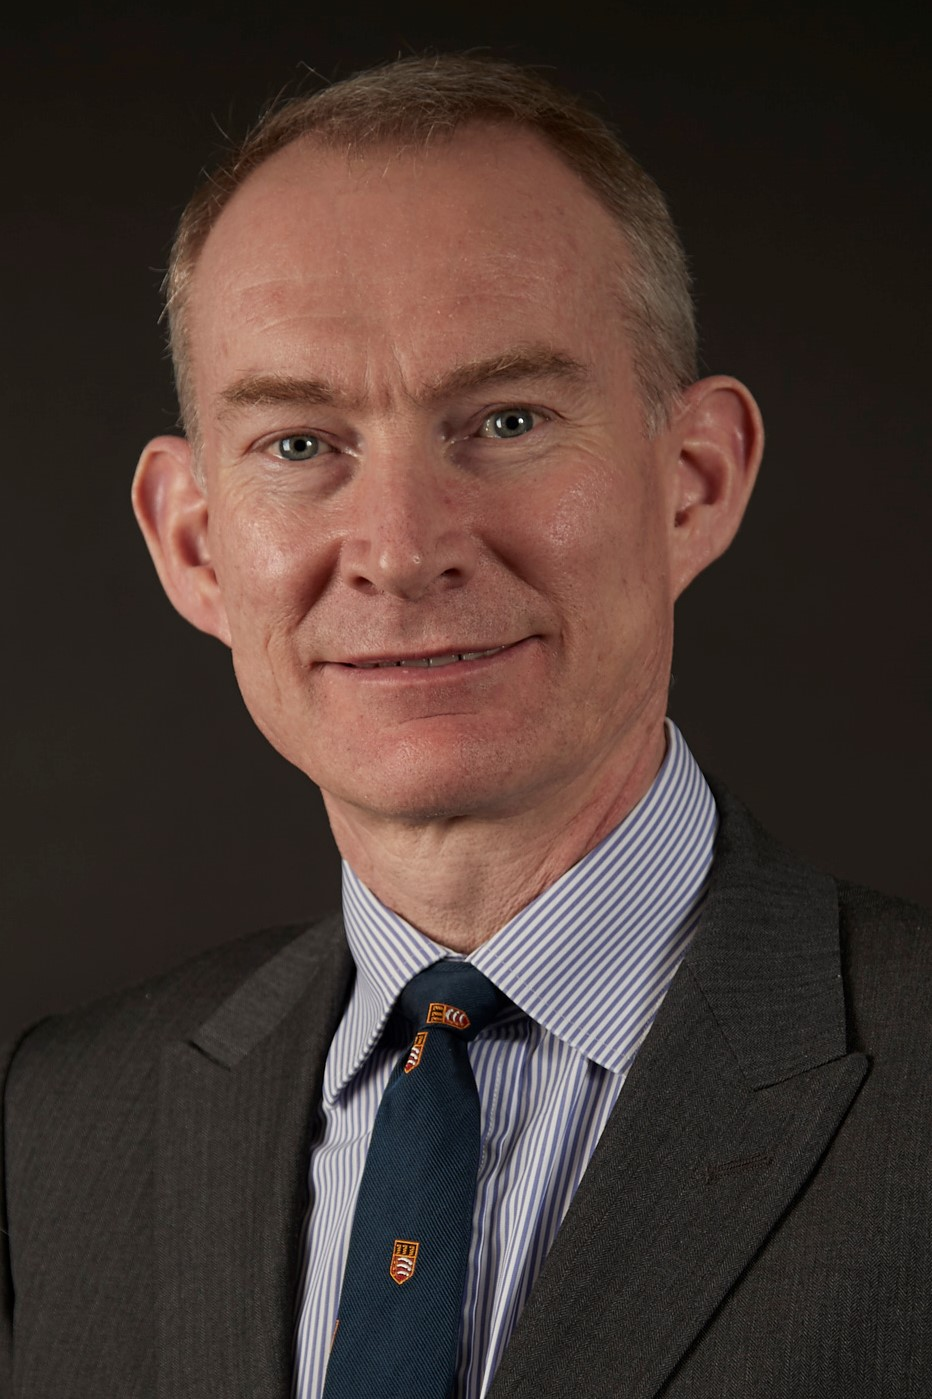 Professor Russell Smith – Postgraduate Dean